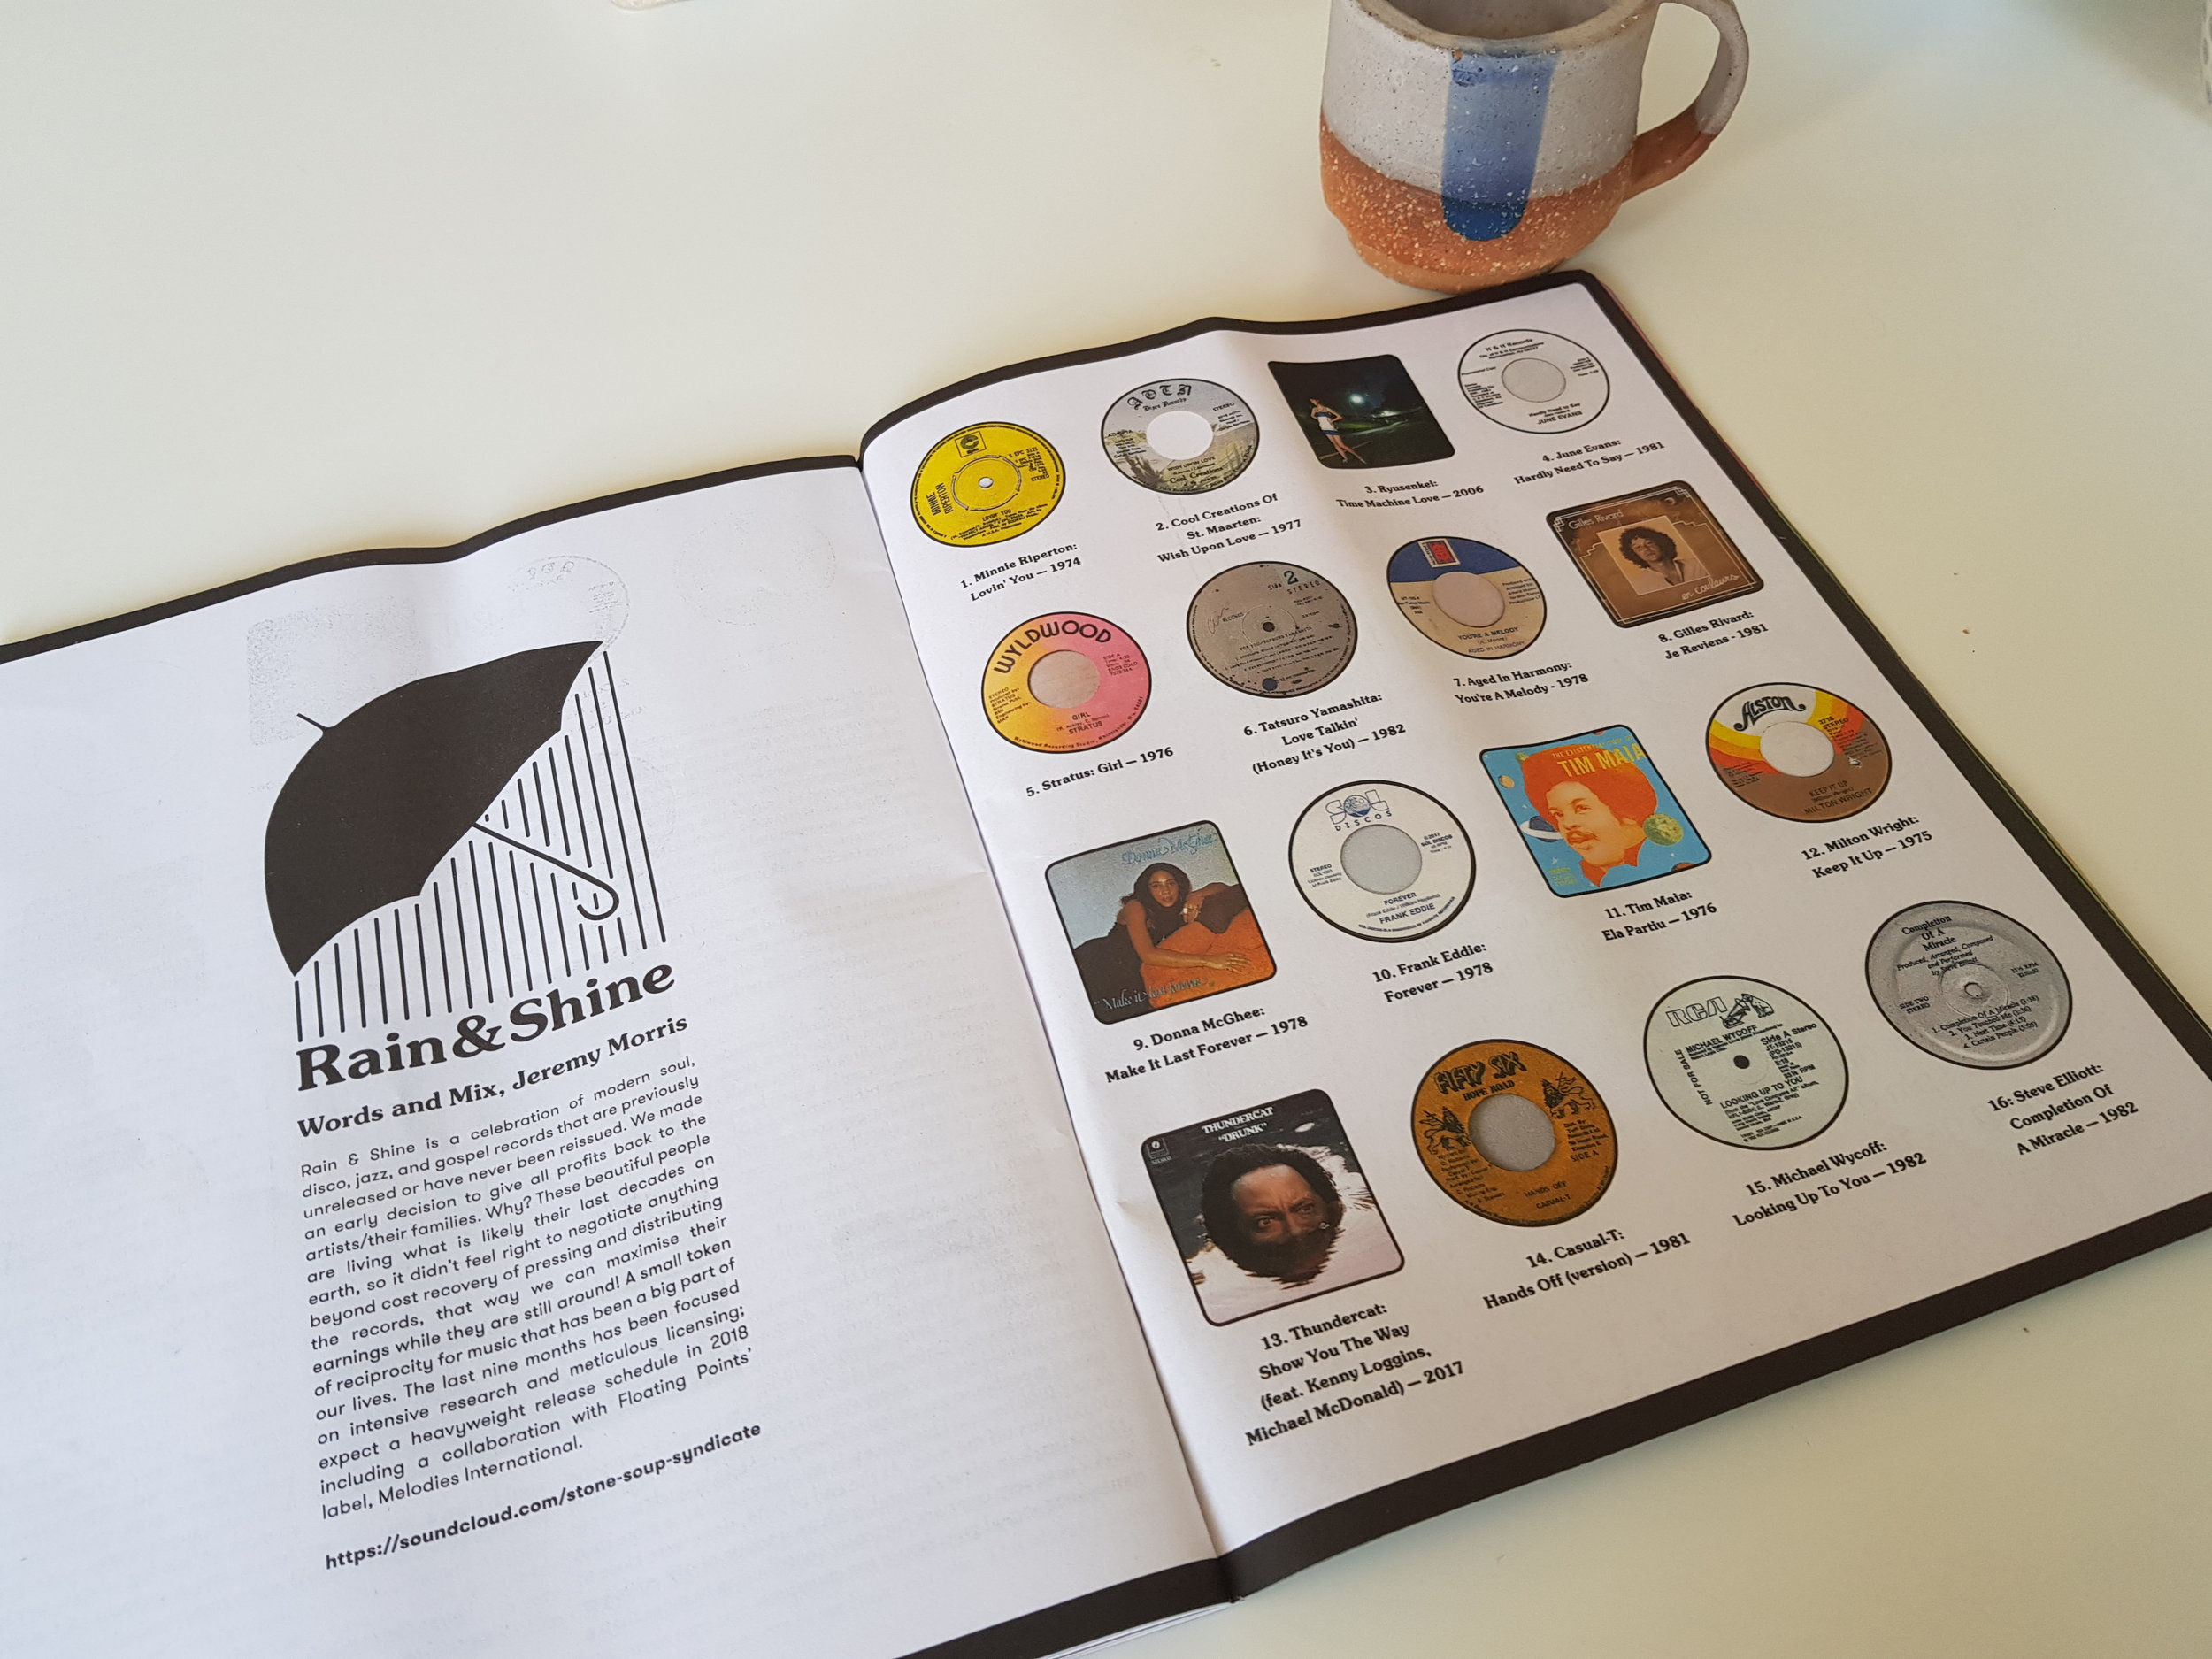 Stone Soup Syndicate FeatureThank you to our friends @stonesoupsyndicatefor featuring our record label, and a summer love song mix in Volume 5 of Stone Soup. Check the publication which is out now! ♥️ #independentstreetpress -